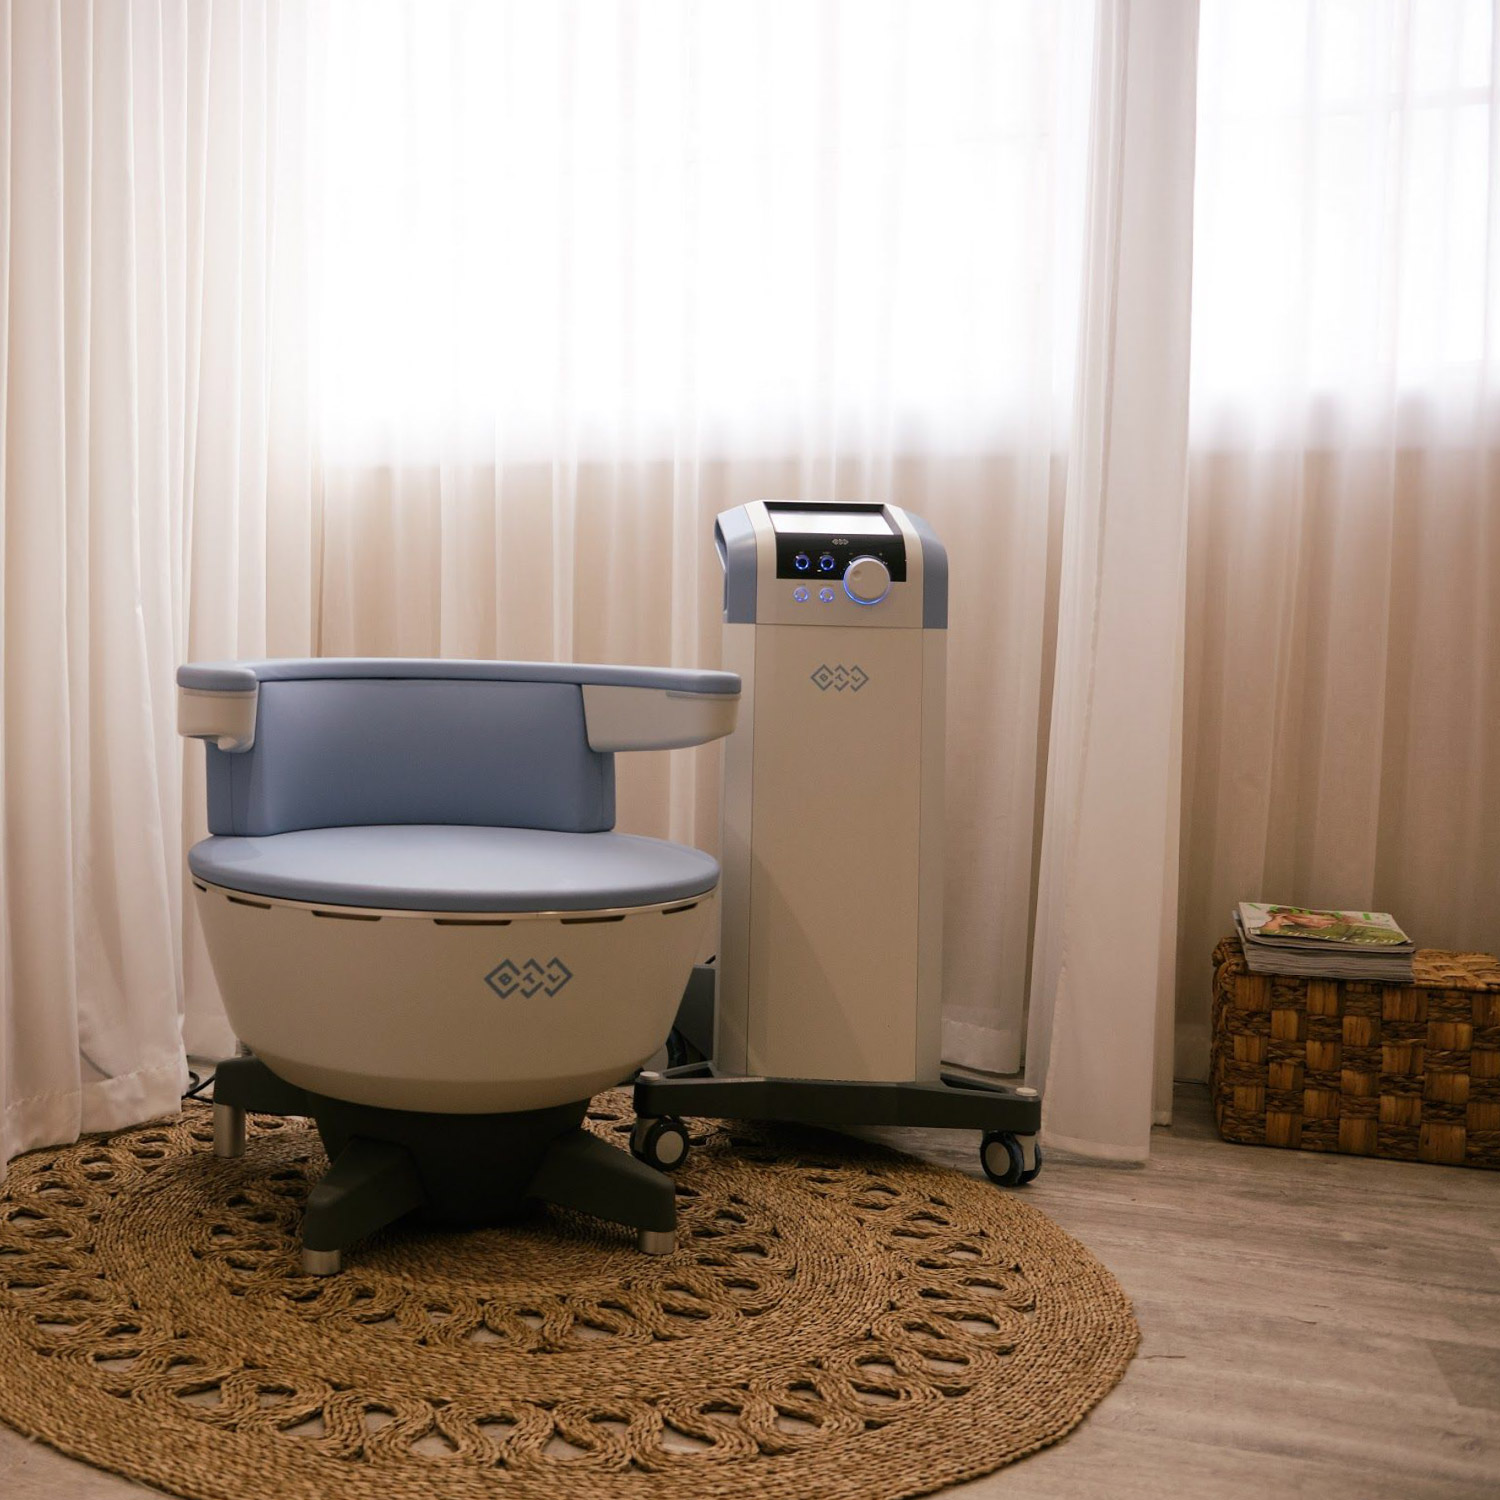 Intimate Health & Wellbeing Room - An additional Express Facial Bar to our ground floor area means we can perform even more of our signature and specialised facials including The Radiance and The Pollution Defense. Elsewhere, our Intimate Health & Wellbeing Room is home to the Kegel Throne. A medical and scientifically backed device that delivers 11,000 super≠charged Kegel exercises via electromagnetic currents in just 28 minutes. With no need to remove your clothes, each session can be enjoyed alongside an uplifting dose of LED light therapy.